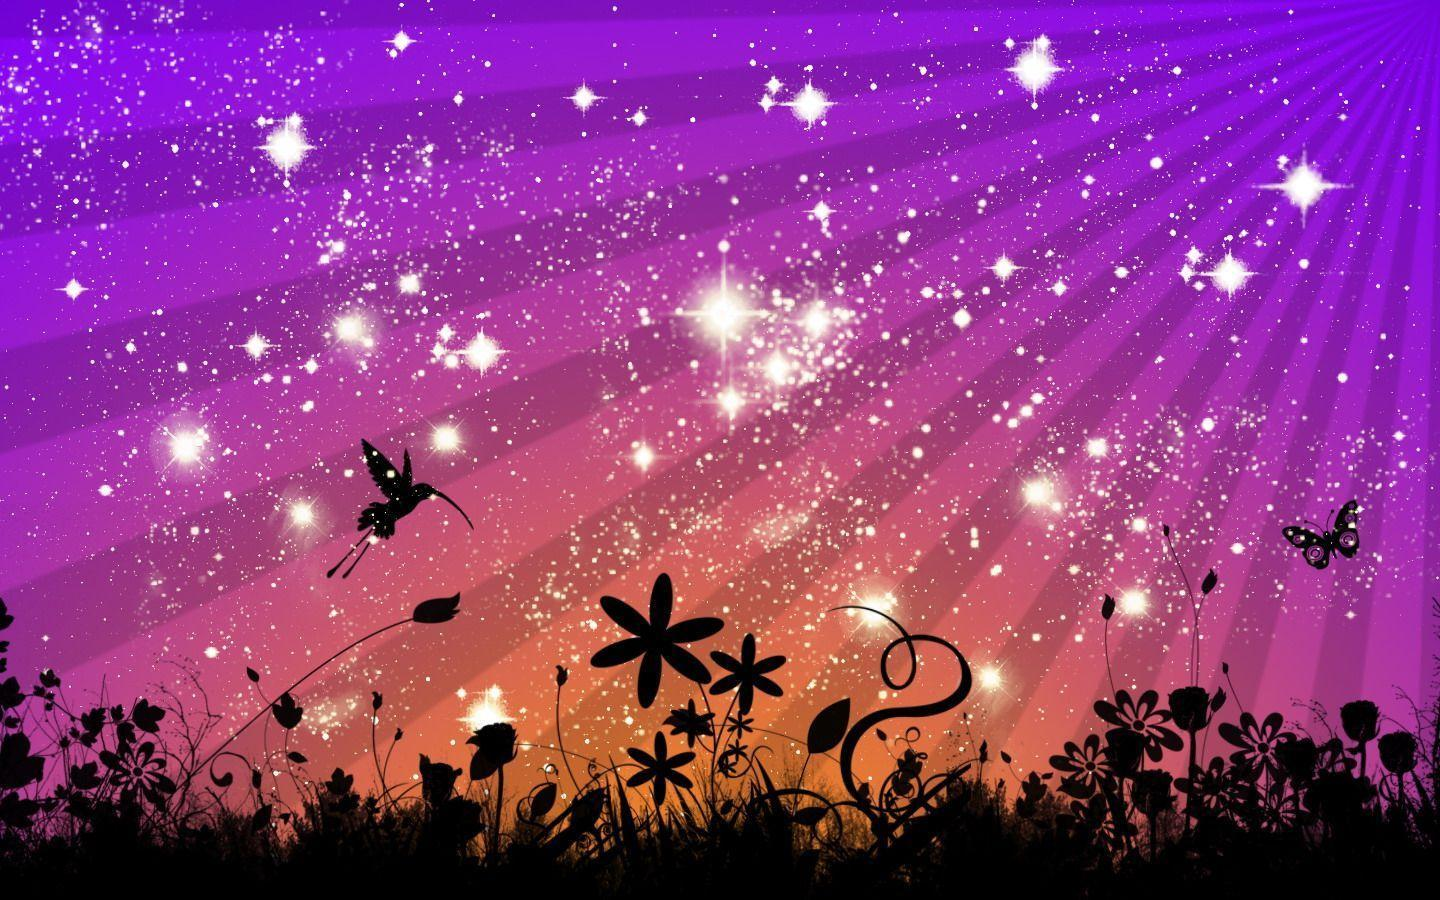 stars wallpapers backgrounds images - photo #42